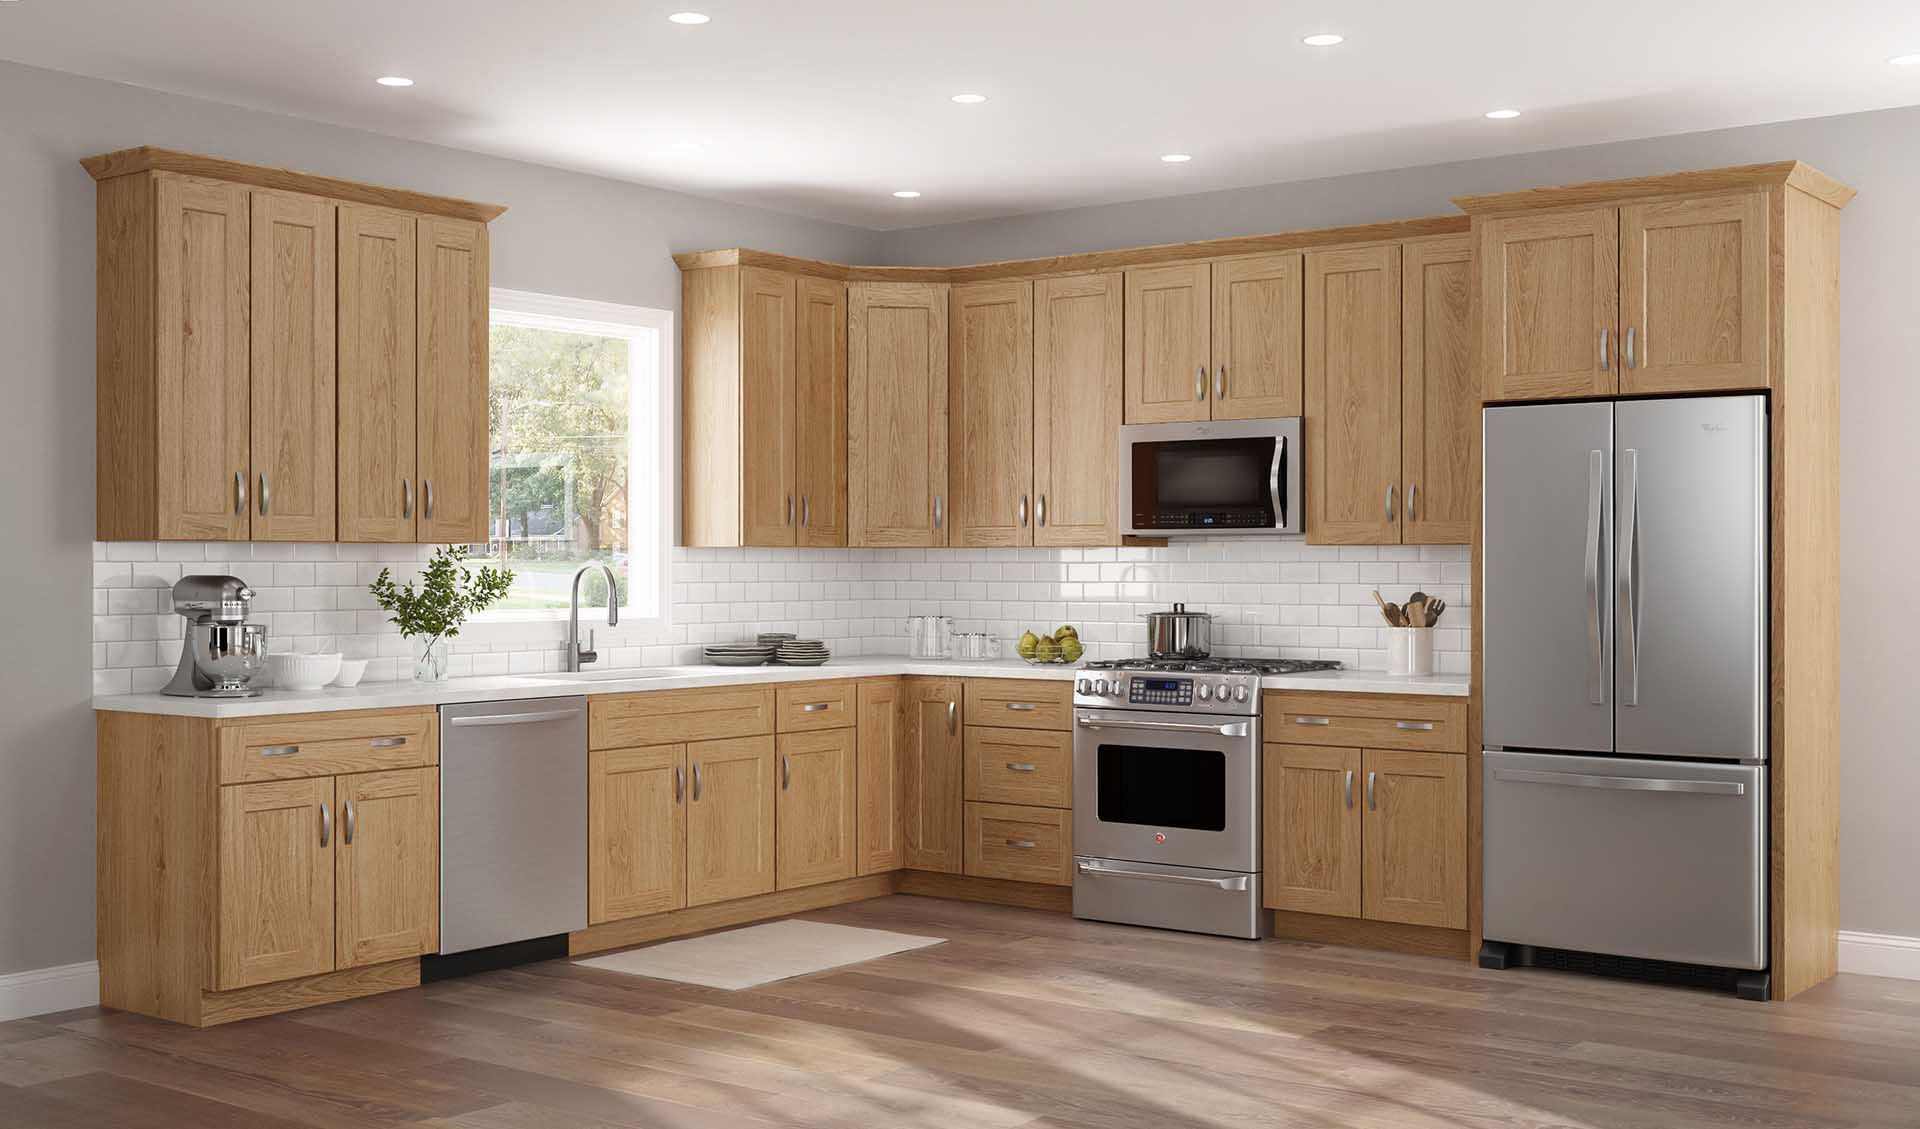 Kitchen Cabinets Kountry Cabinets Home Furnishings Kitchen Cabinets Home Furnishings Maple Cabinets